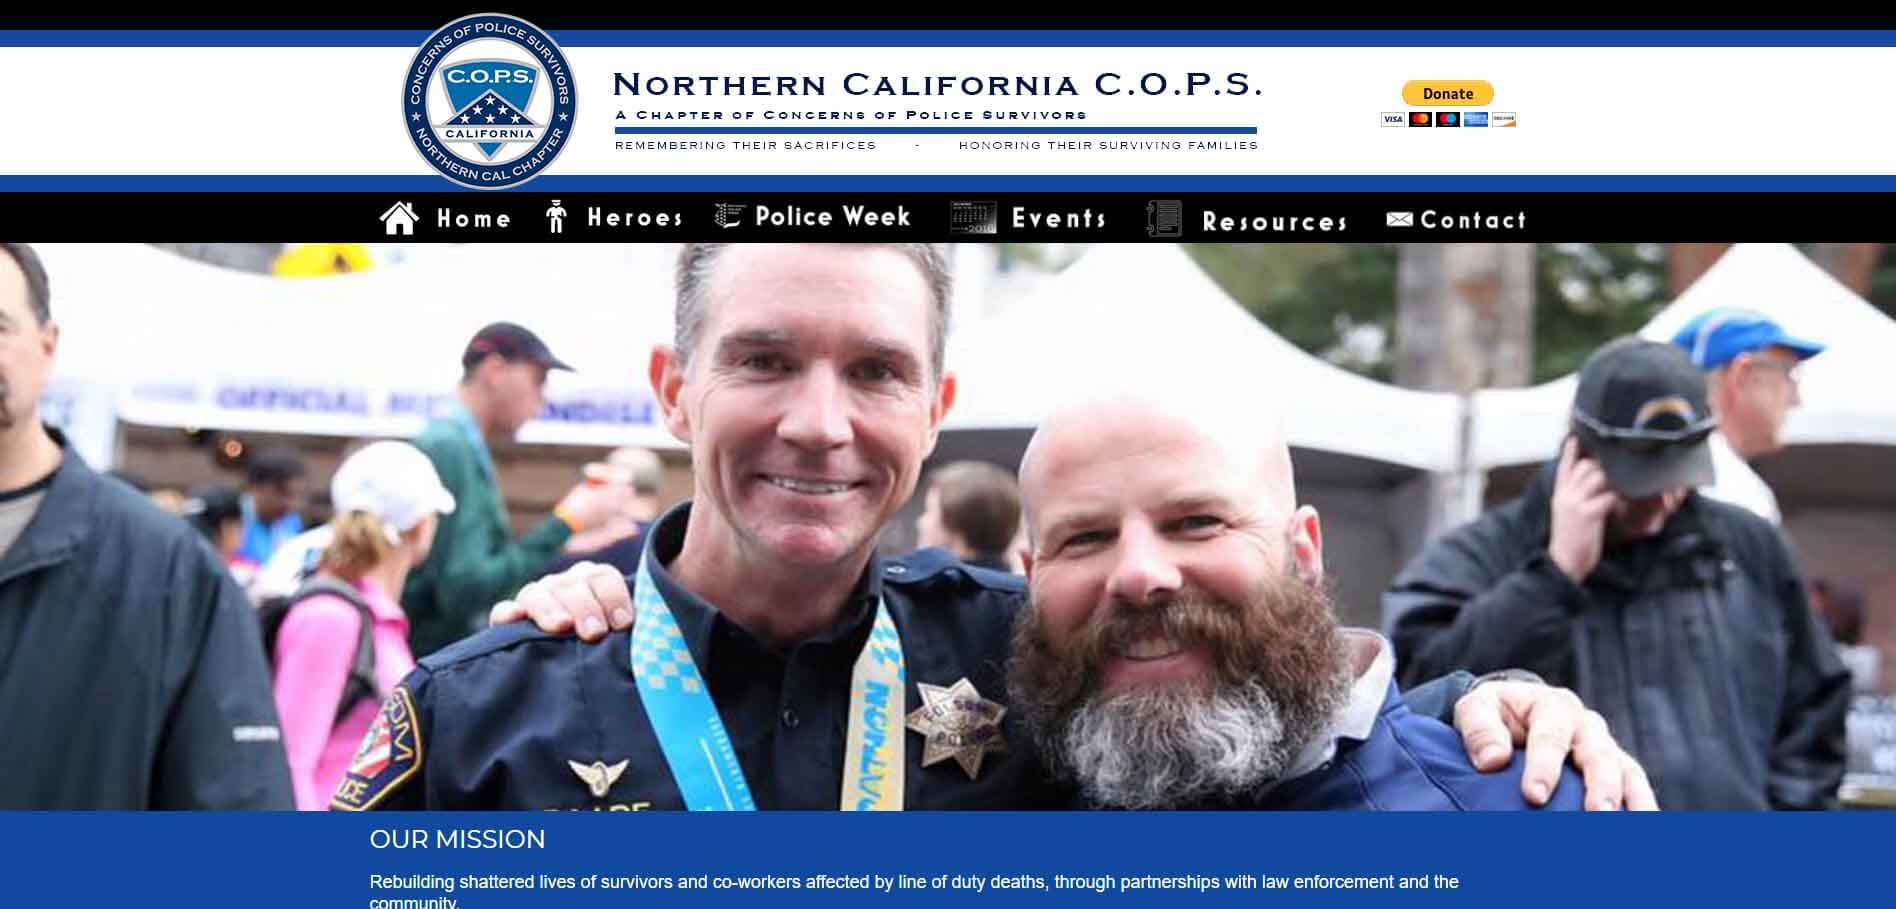 Northern California C.O.P.S.